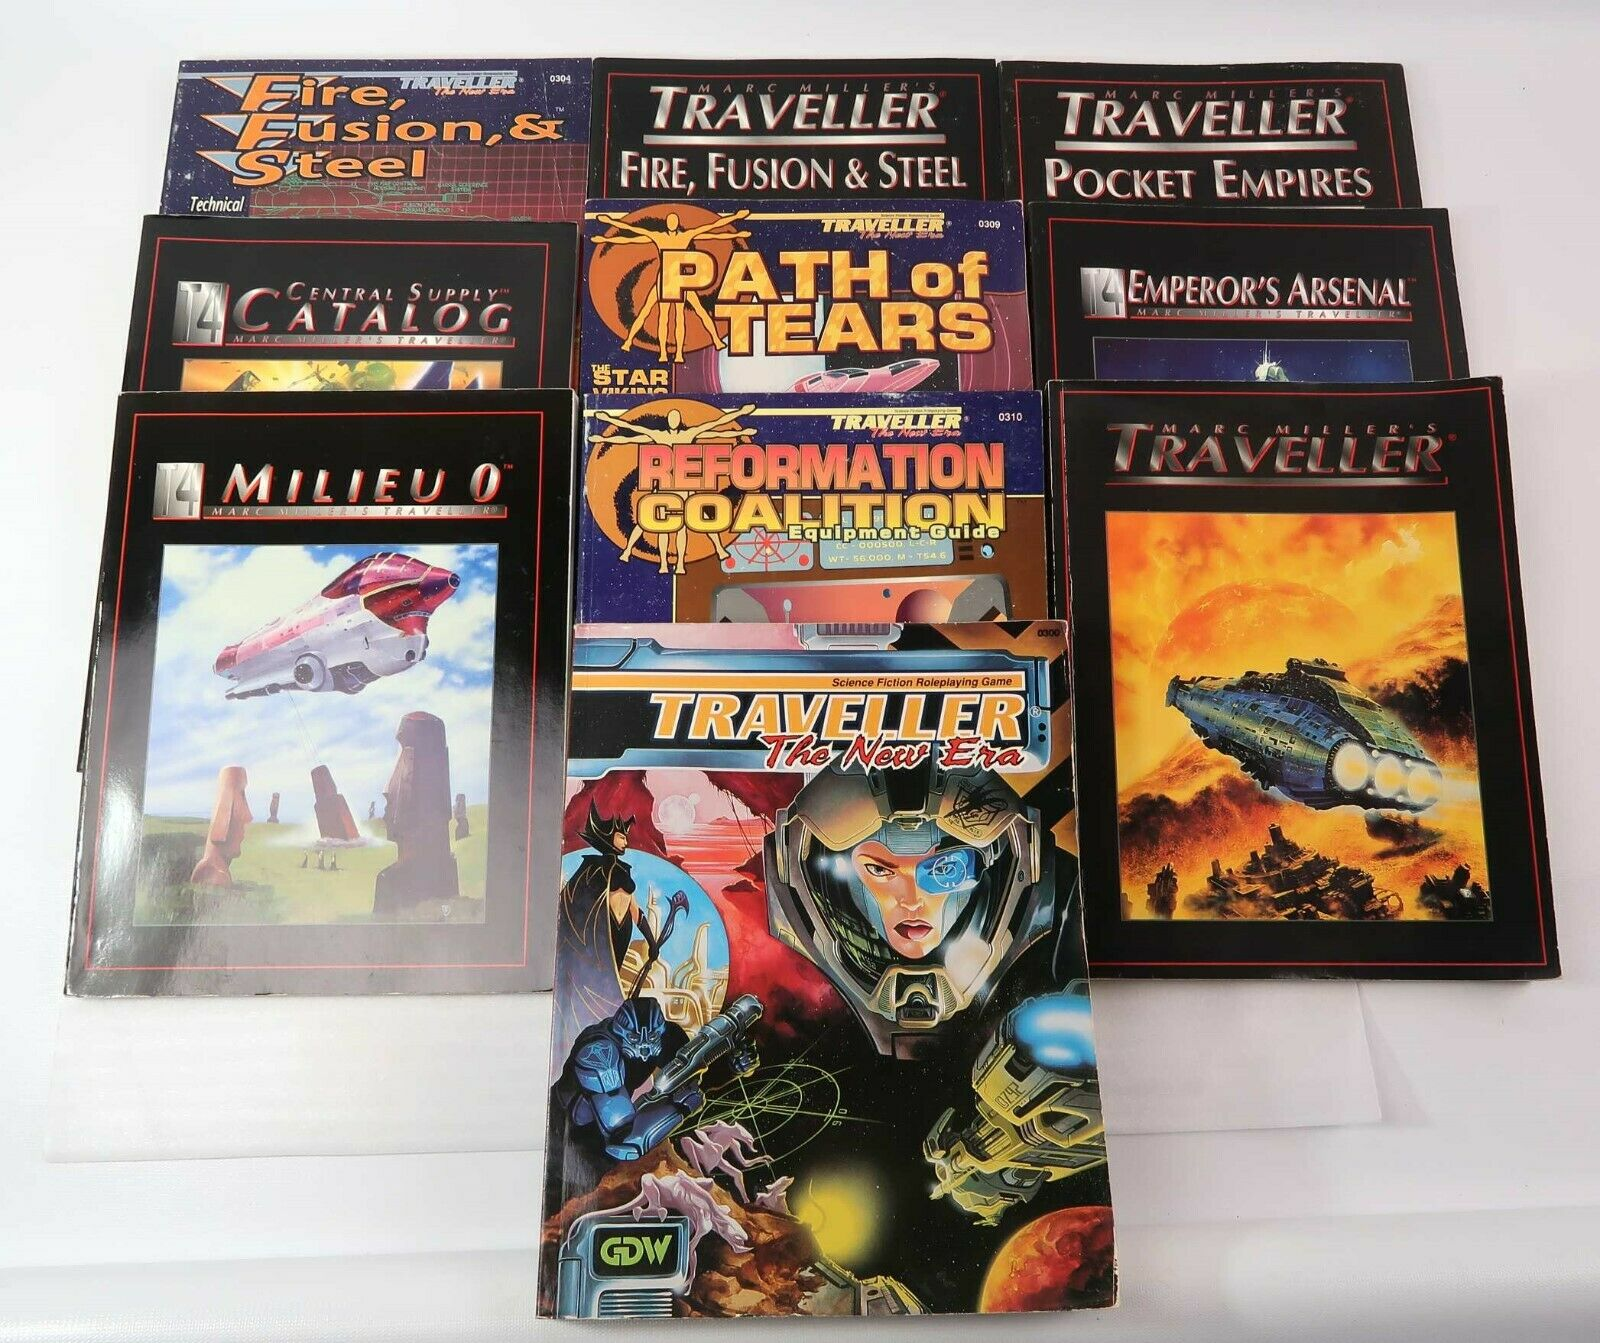 HUGE LOT of 10 Traveller GDW   Imperium SC 1980's   '90's All Good Examples Nice